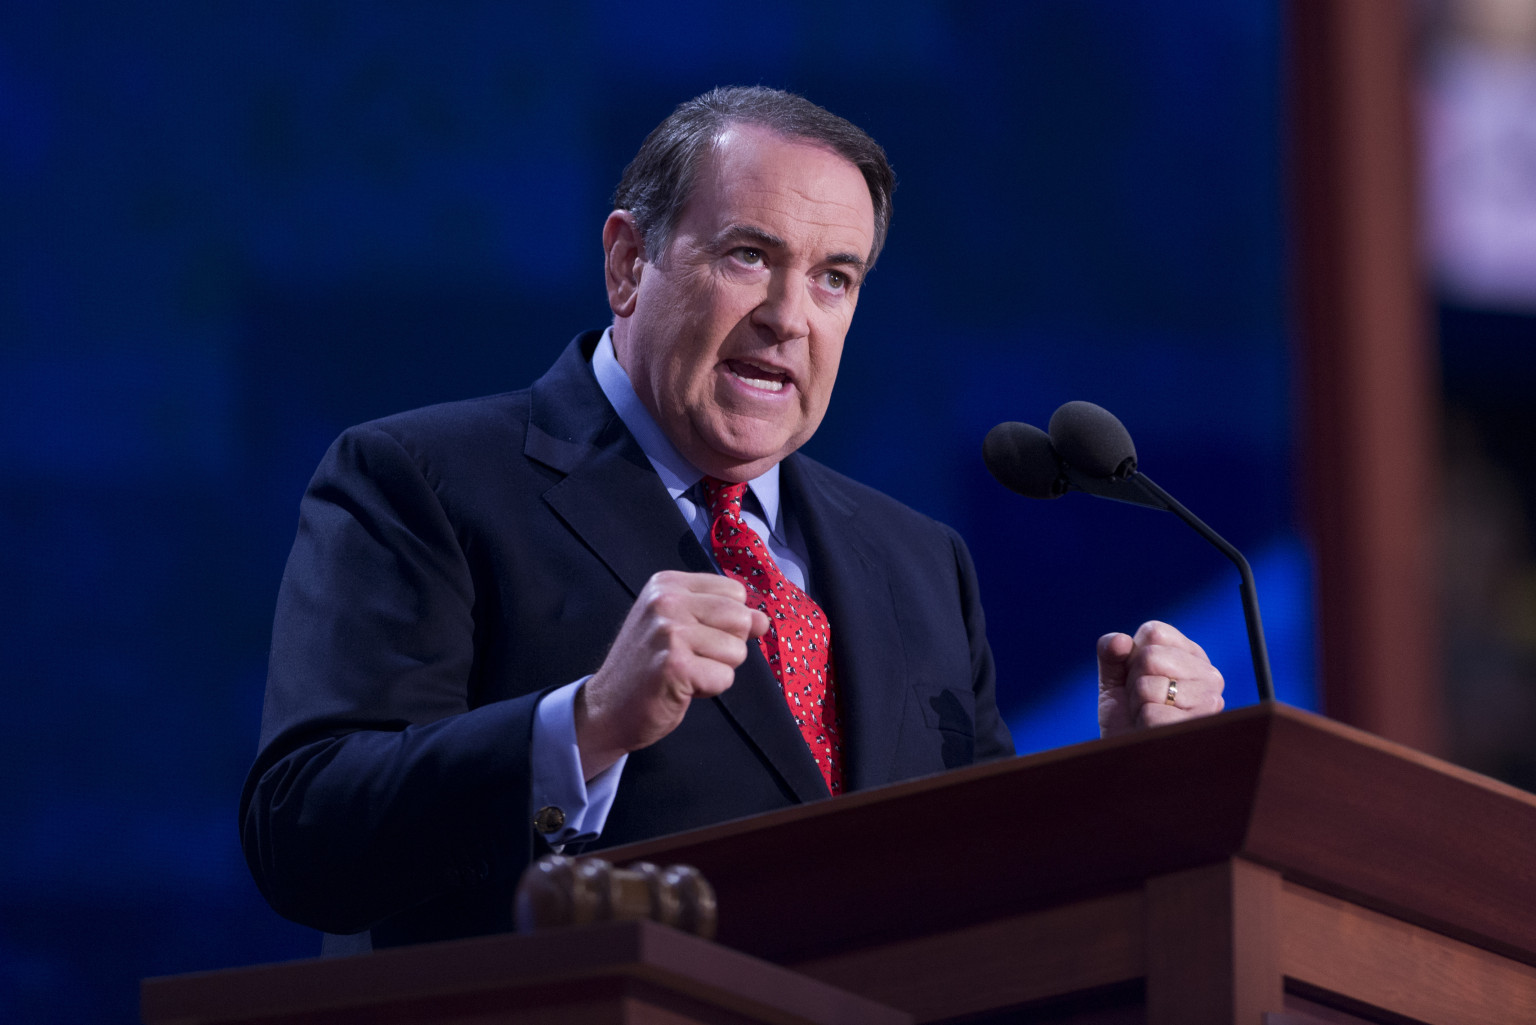 Mike Huckabee, Jim Inhofe Give How-To On Denying Climate Change Without Any Concern For Facts